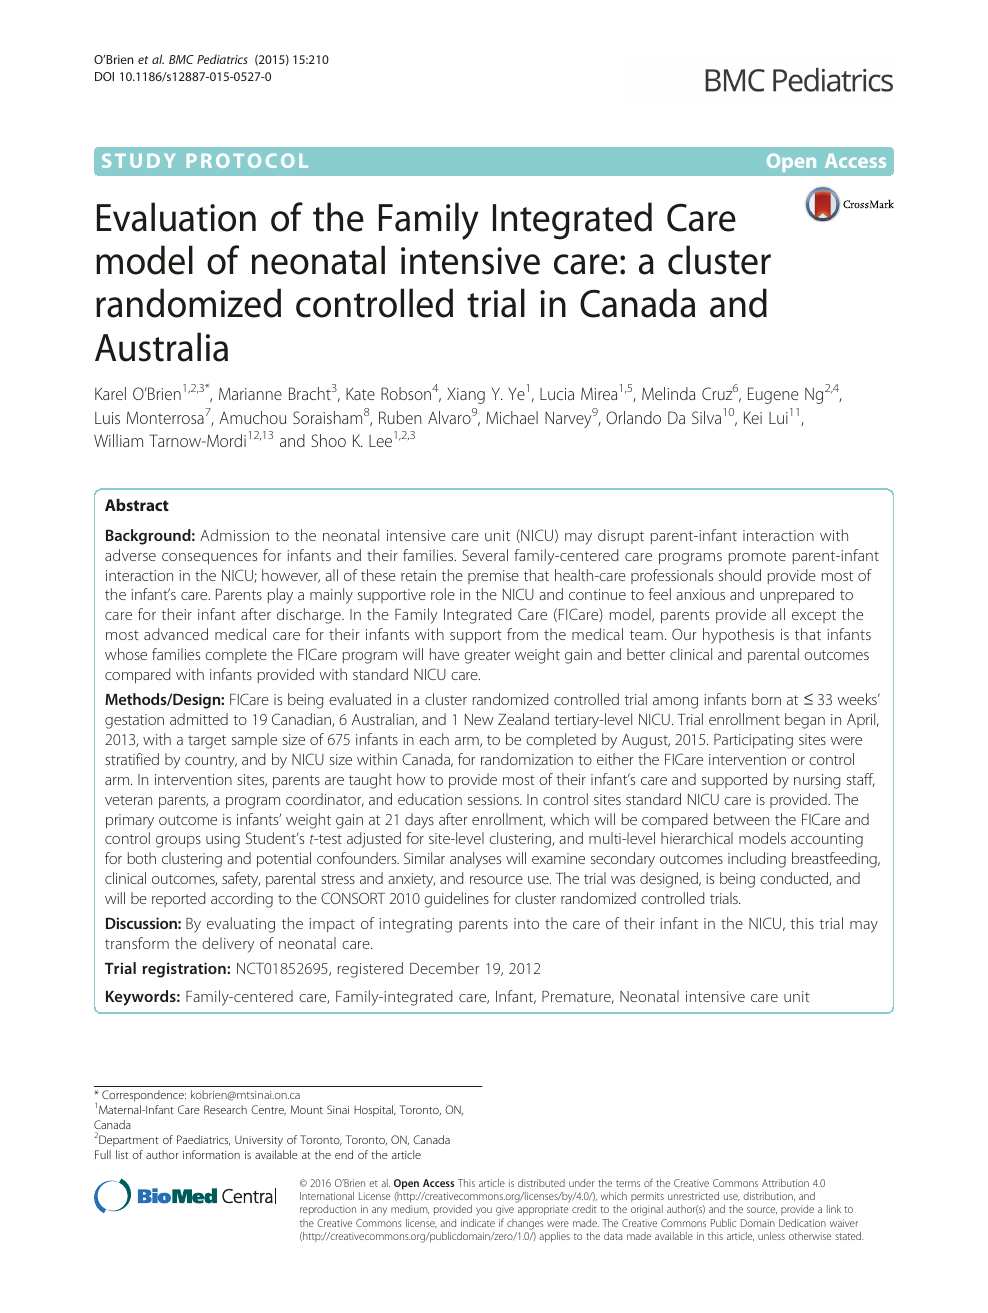 Evaluation of the Family Integrated Care model of neonatal